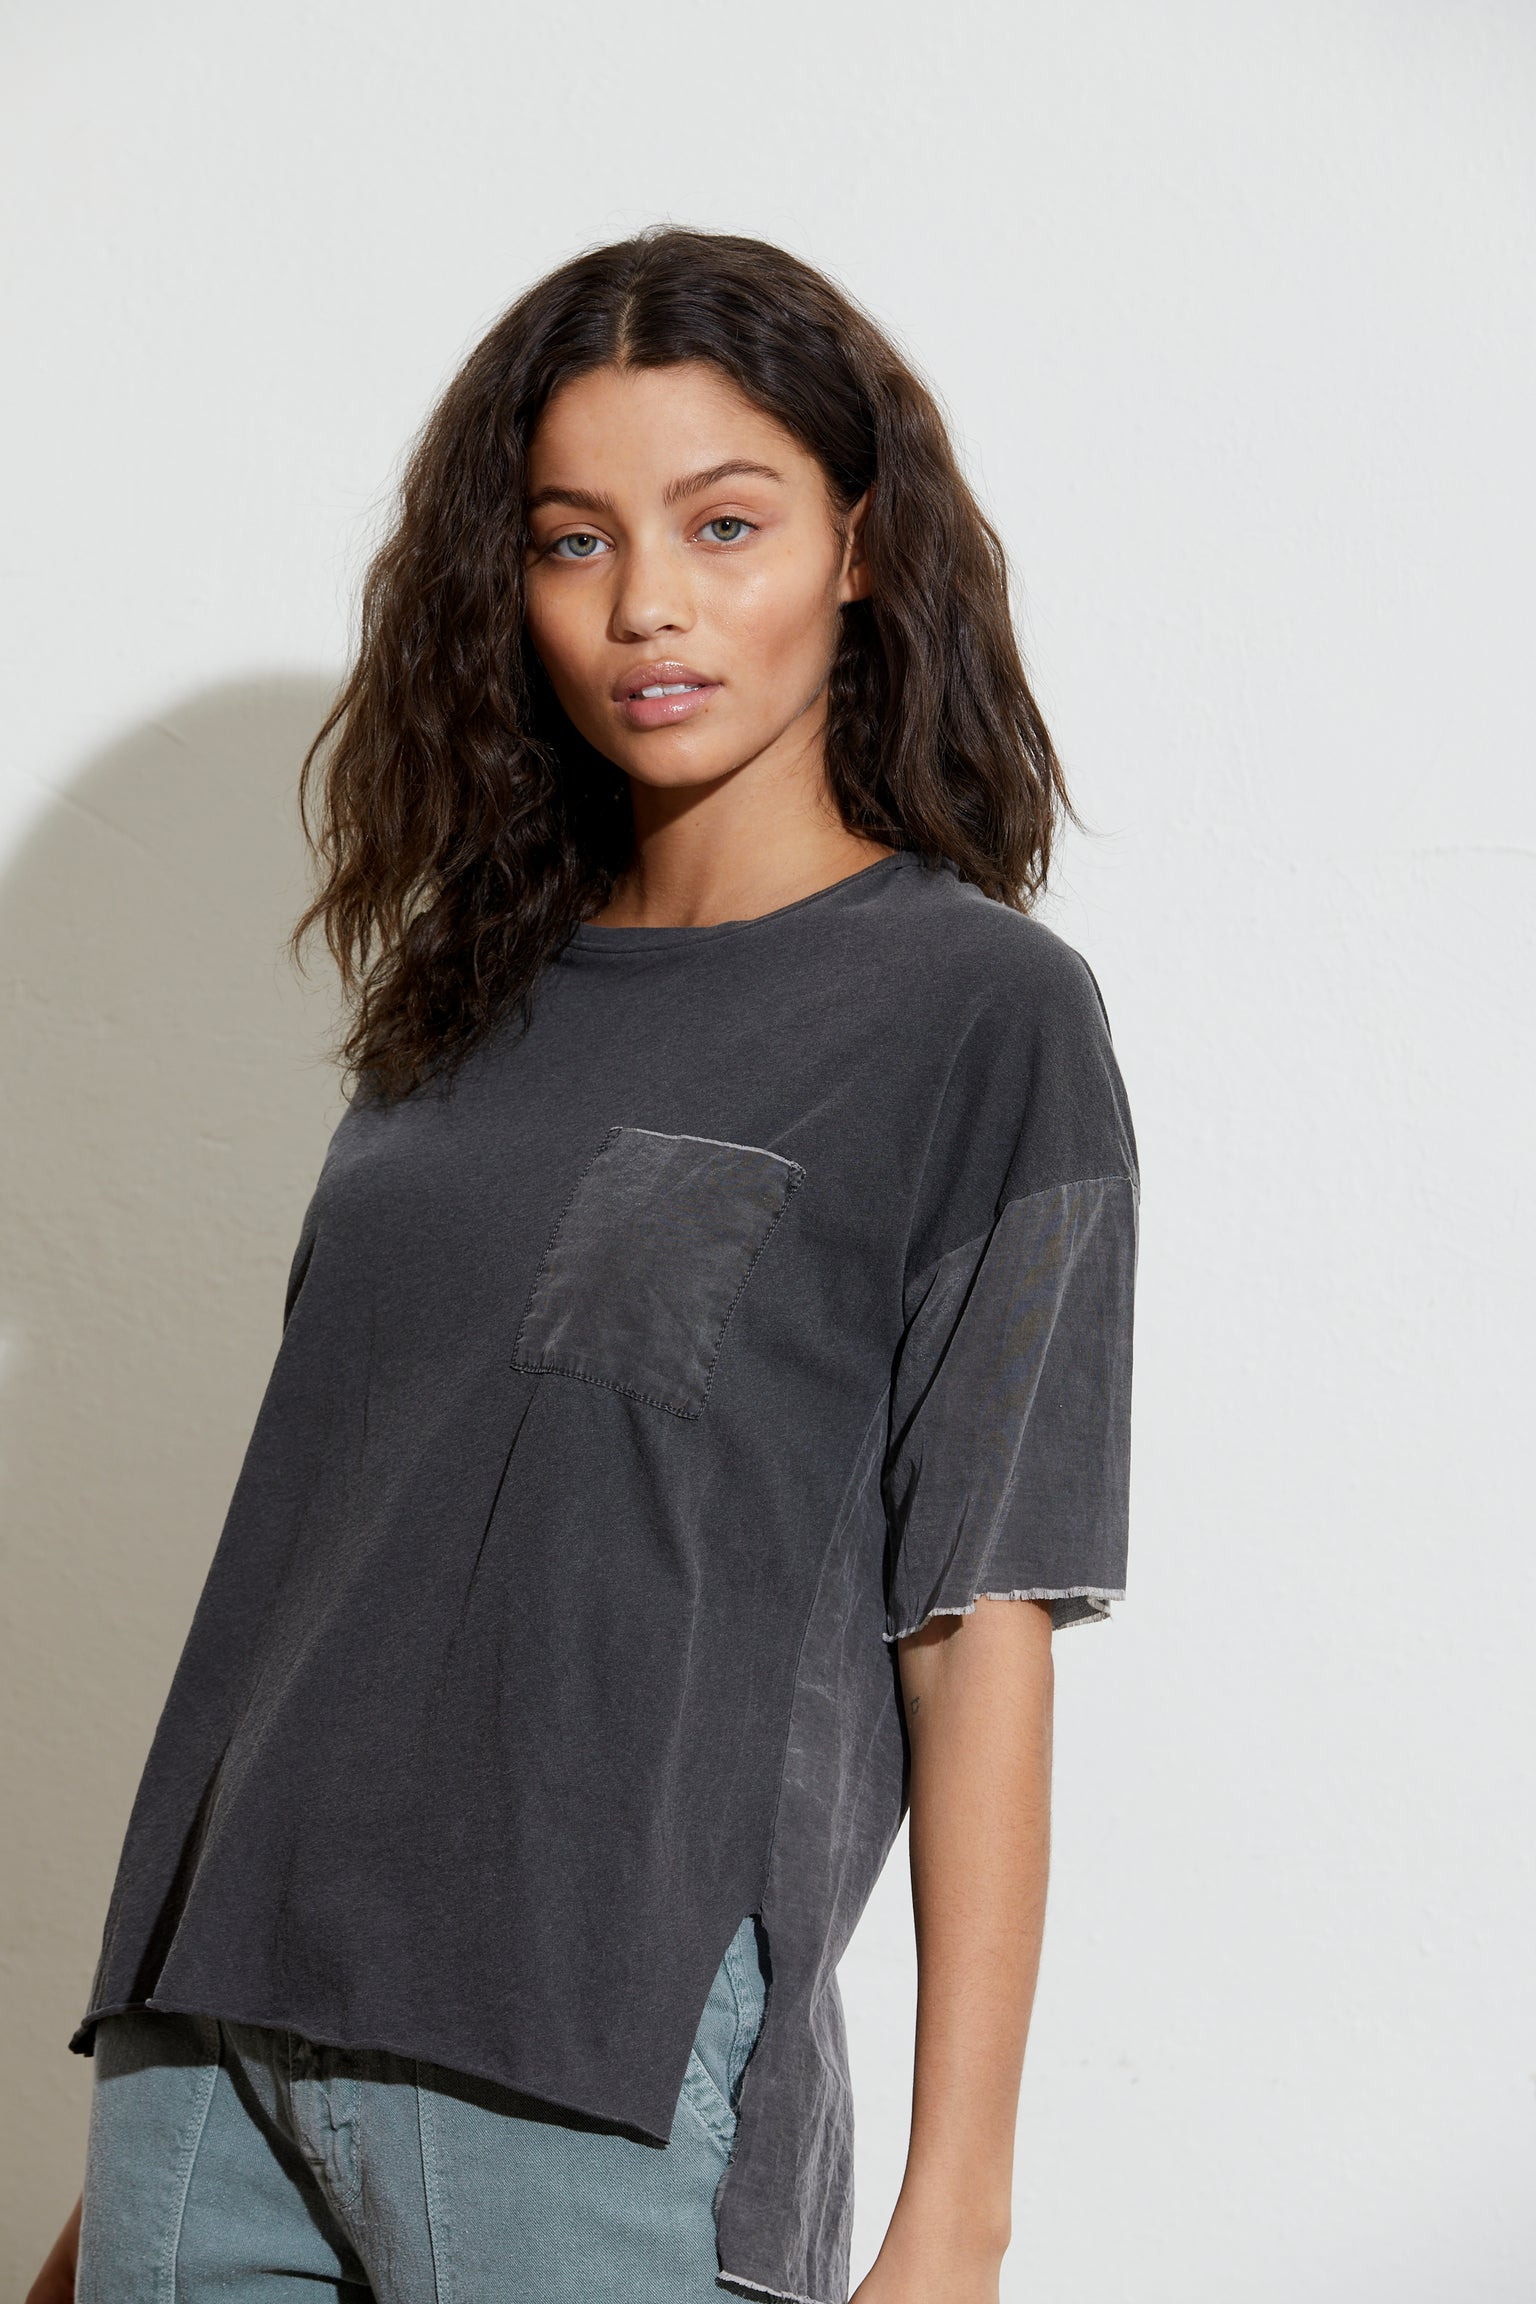 Michelle Contrast Pocket Tee